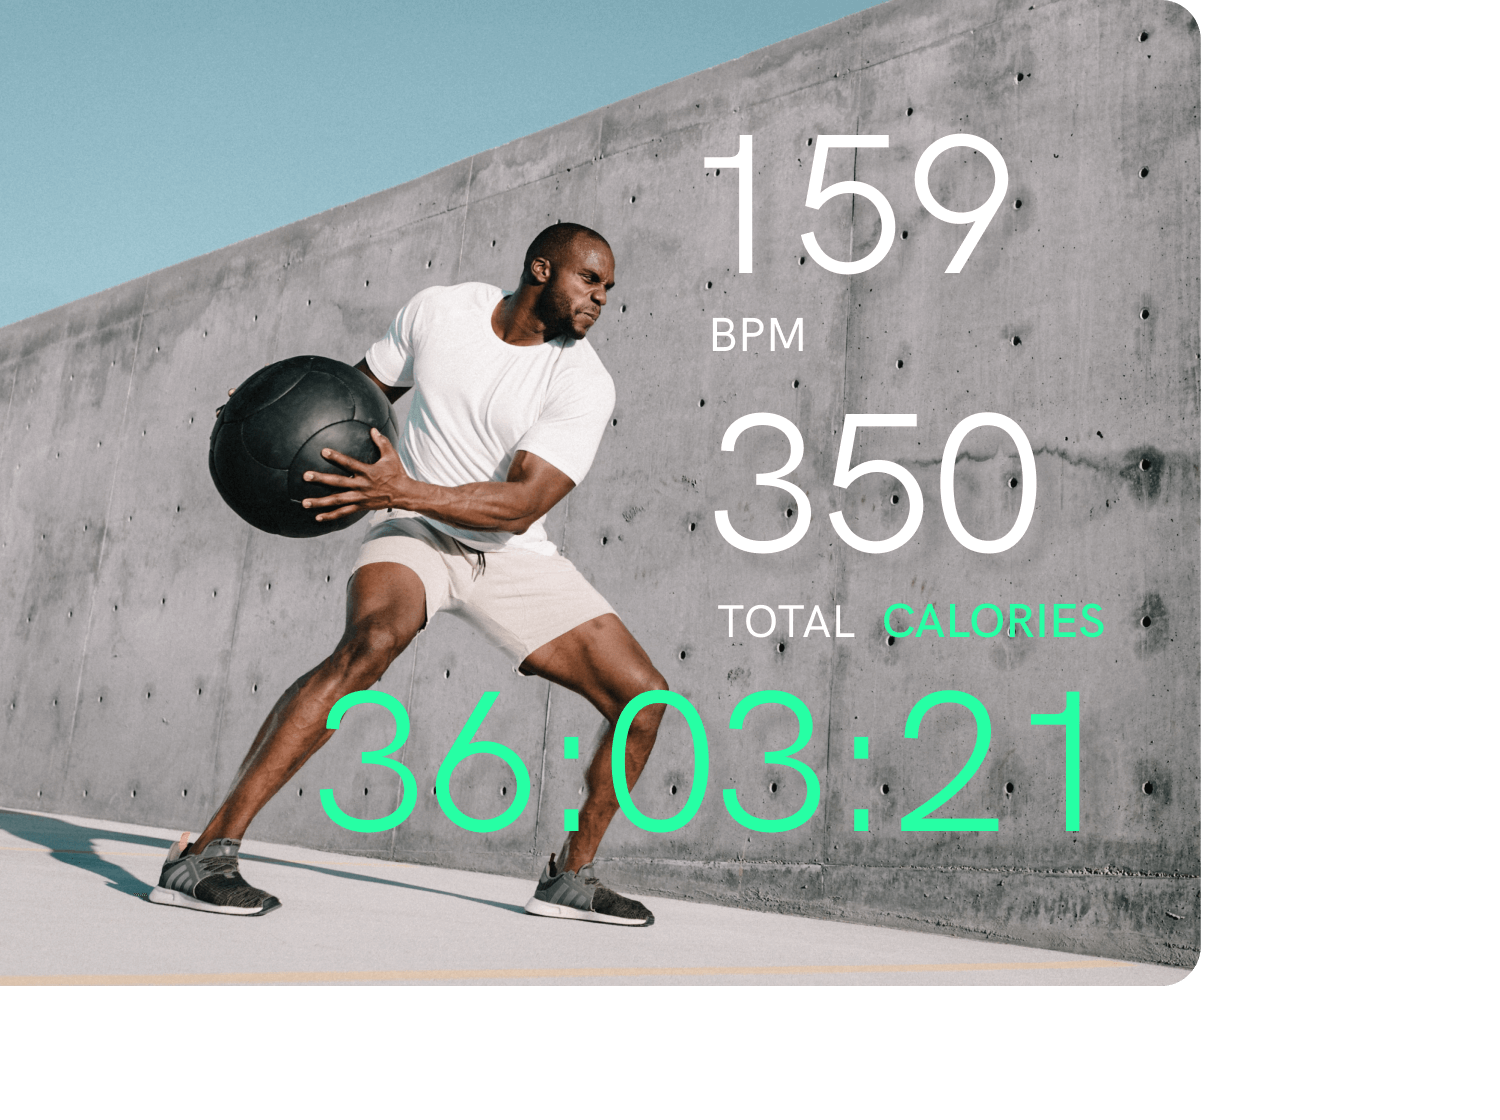 User workout & health stats and analytics